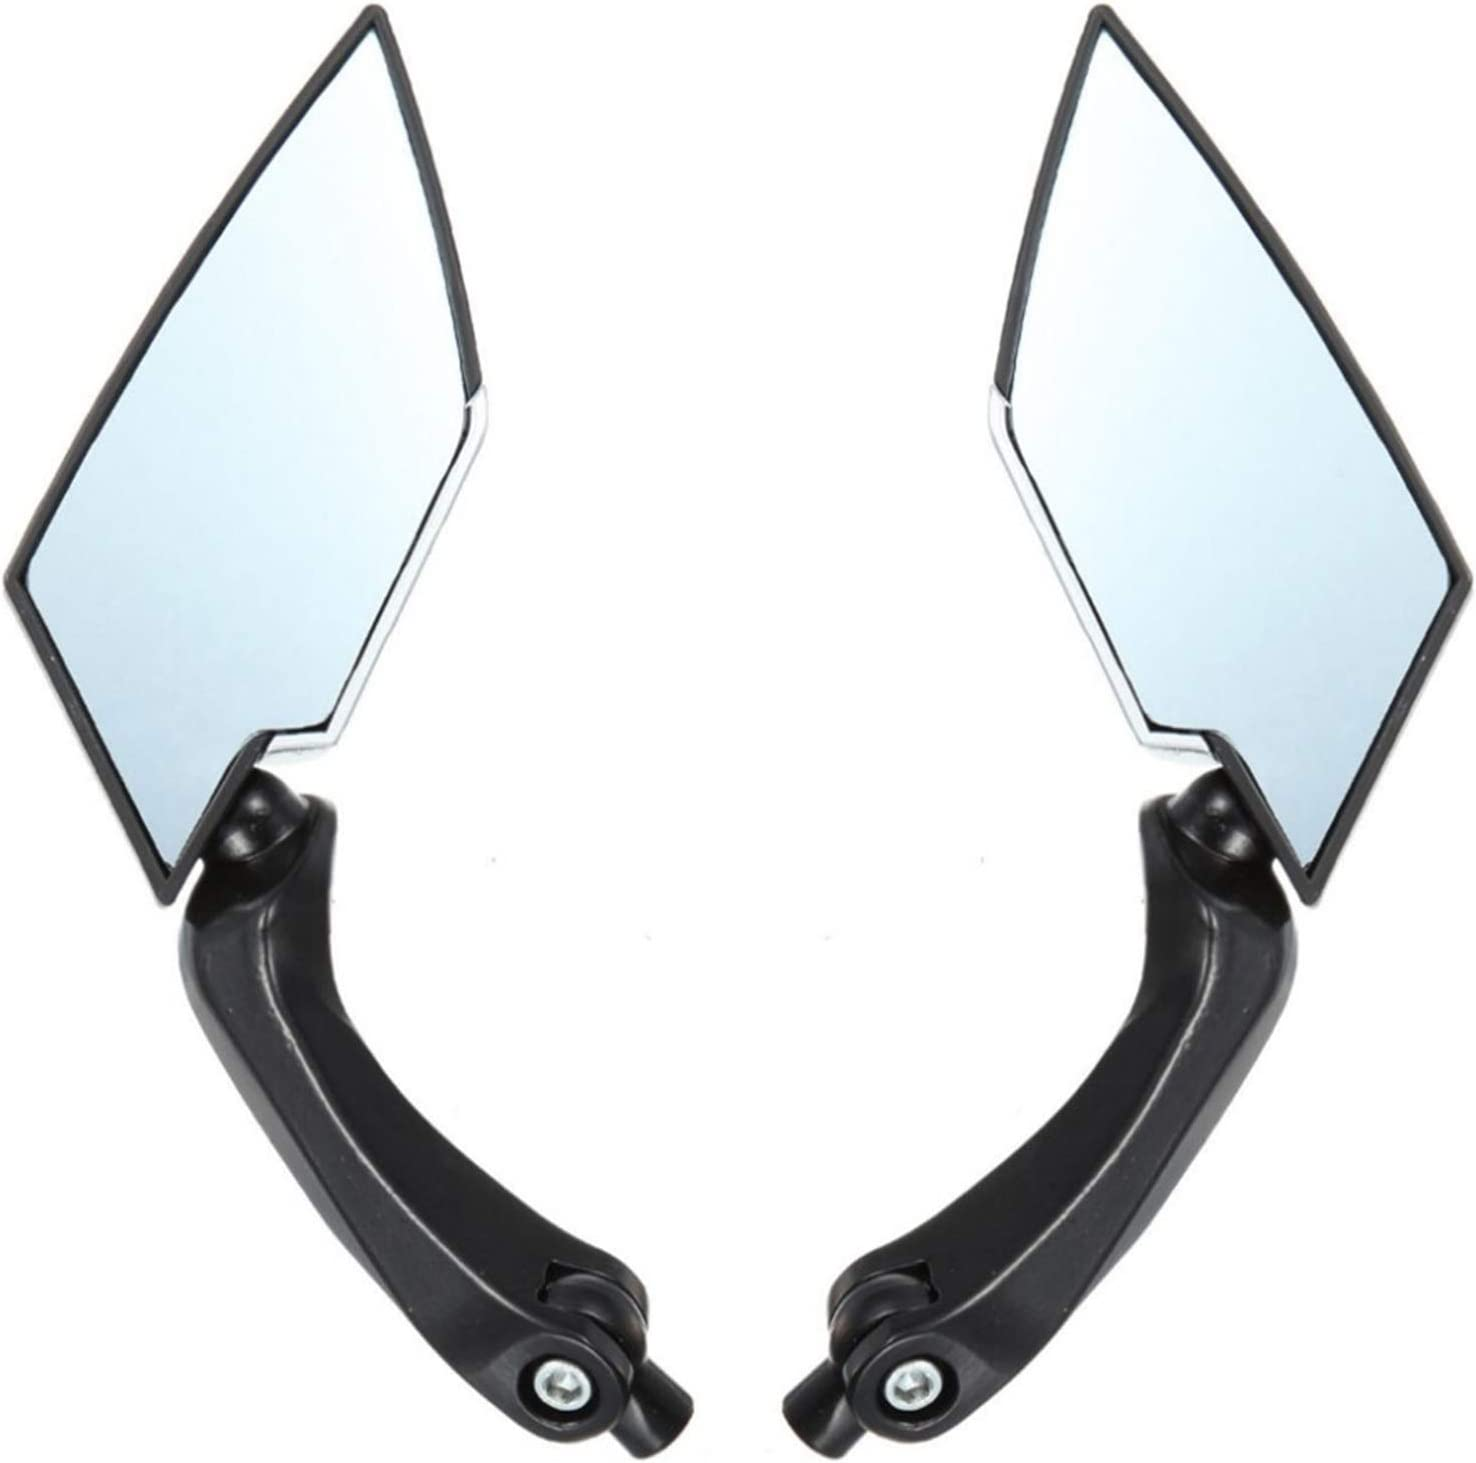 YUDONG MEIJUAN Black Universal Motorcycle Sid View Rearview Factory Great interest outlet Rear